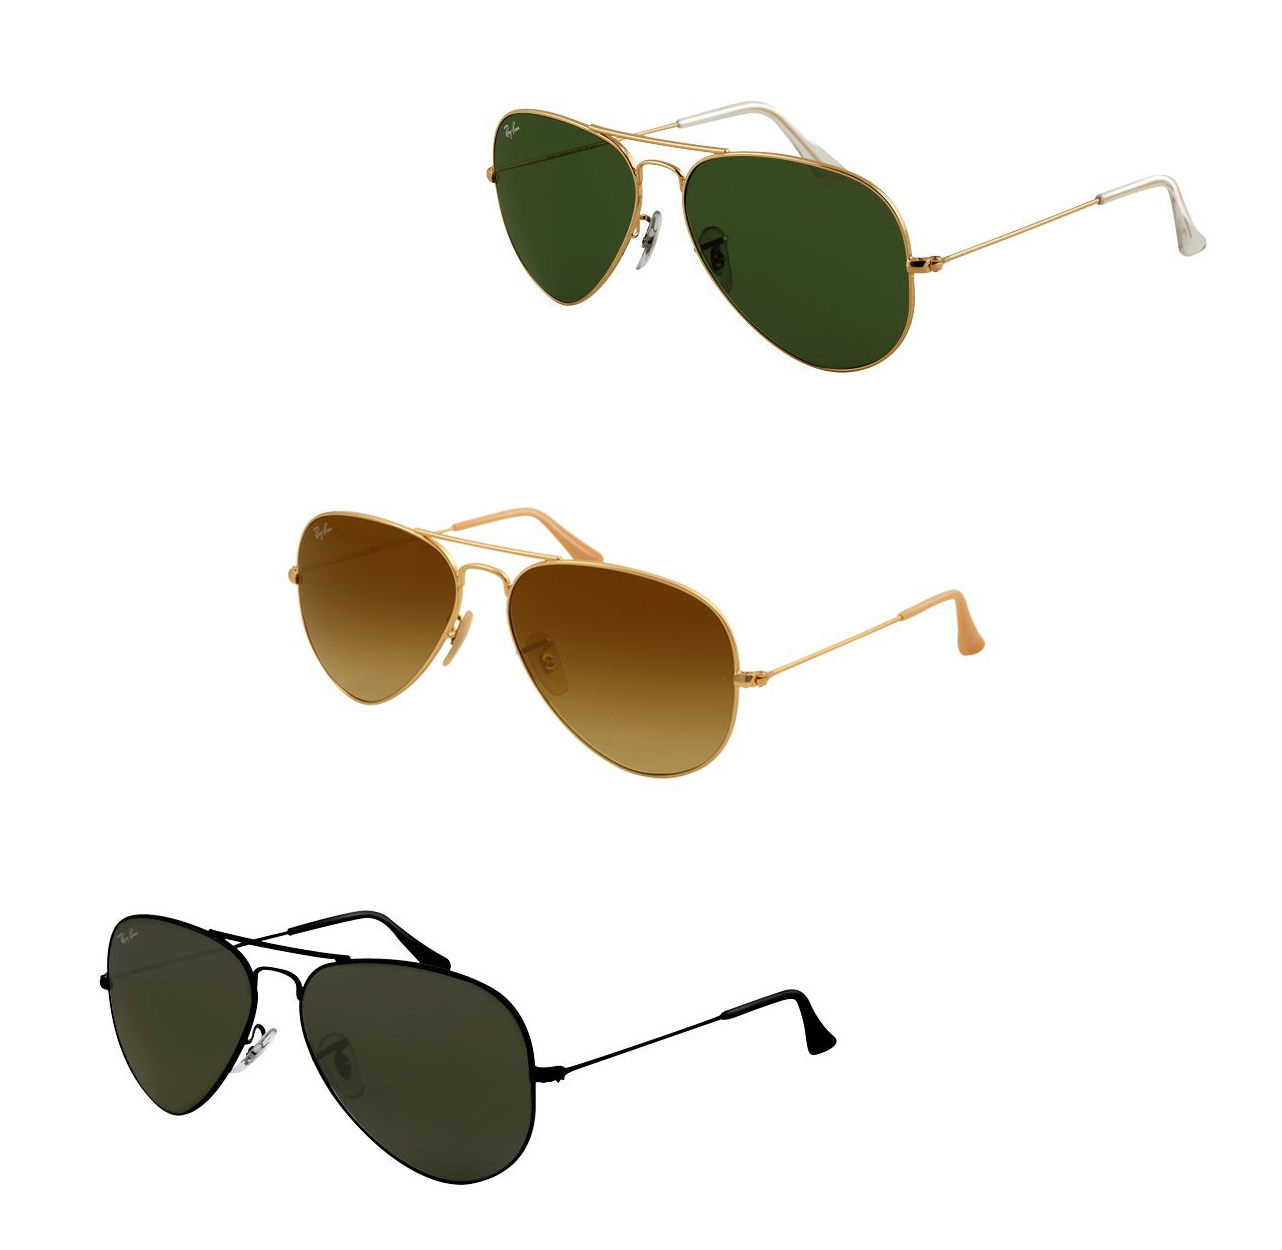 2076c76e4f Ray-Ban RB3025 Aviator Large Metal Sunglasses - 86 Models